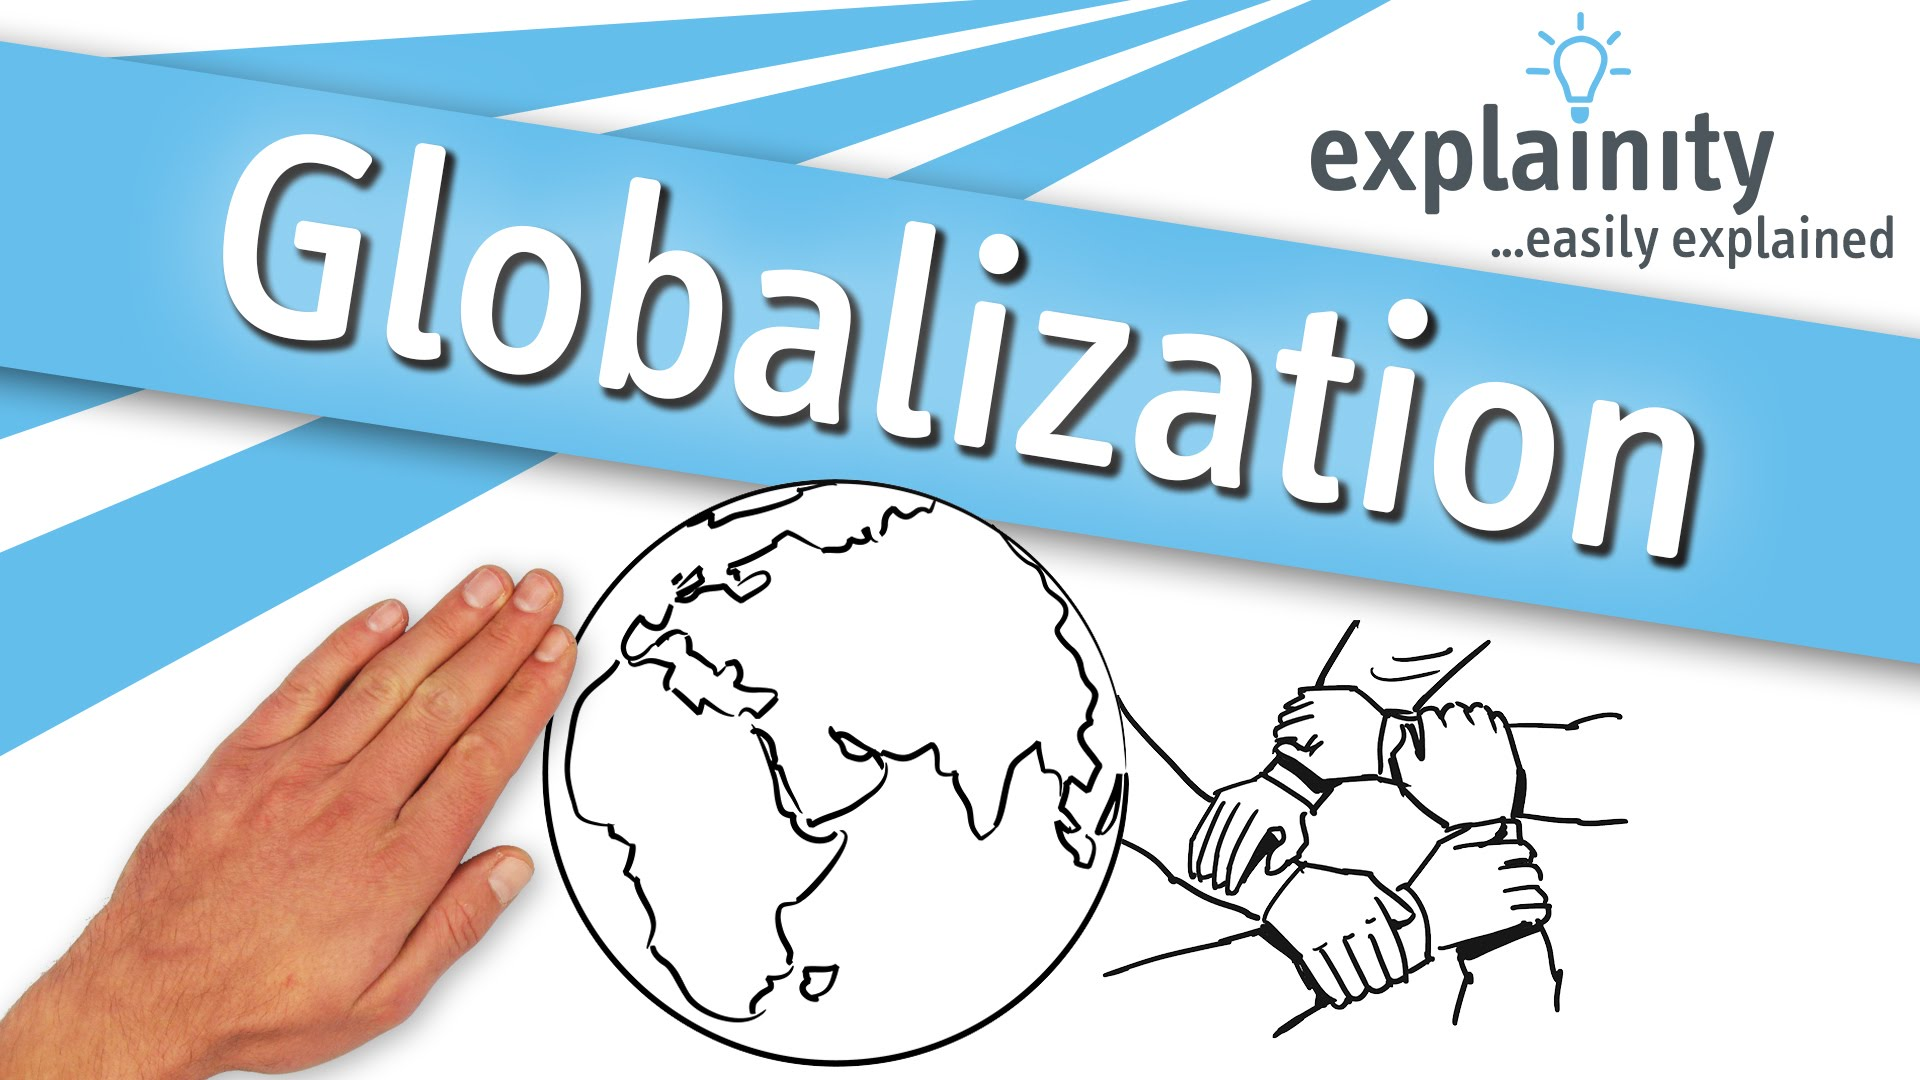 Unit 11 Conflicts Of Globalization In Organizations Assignment